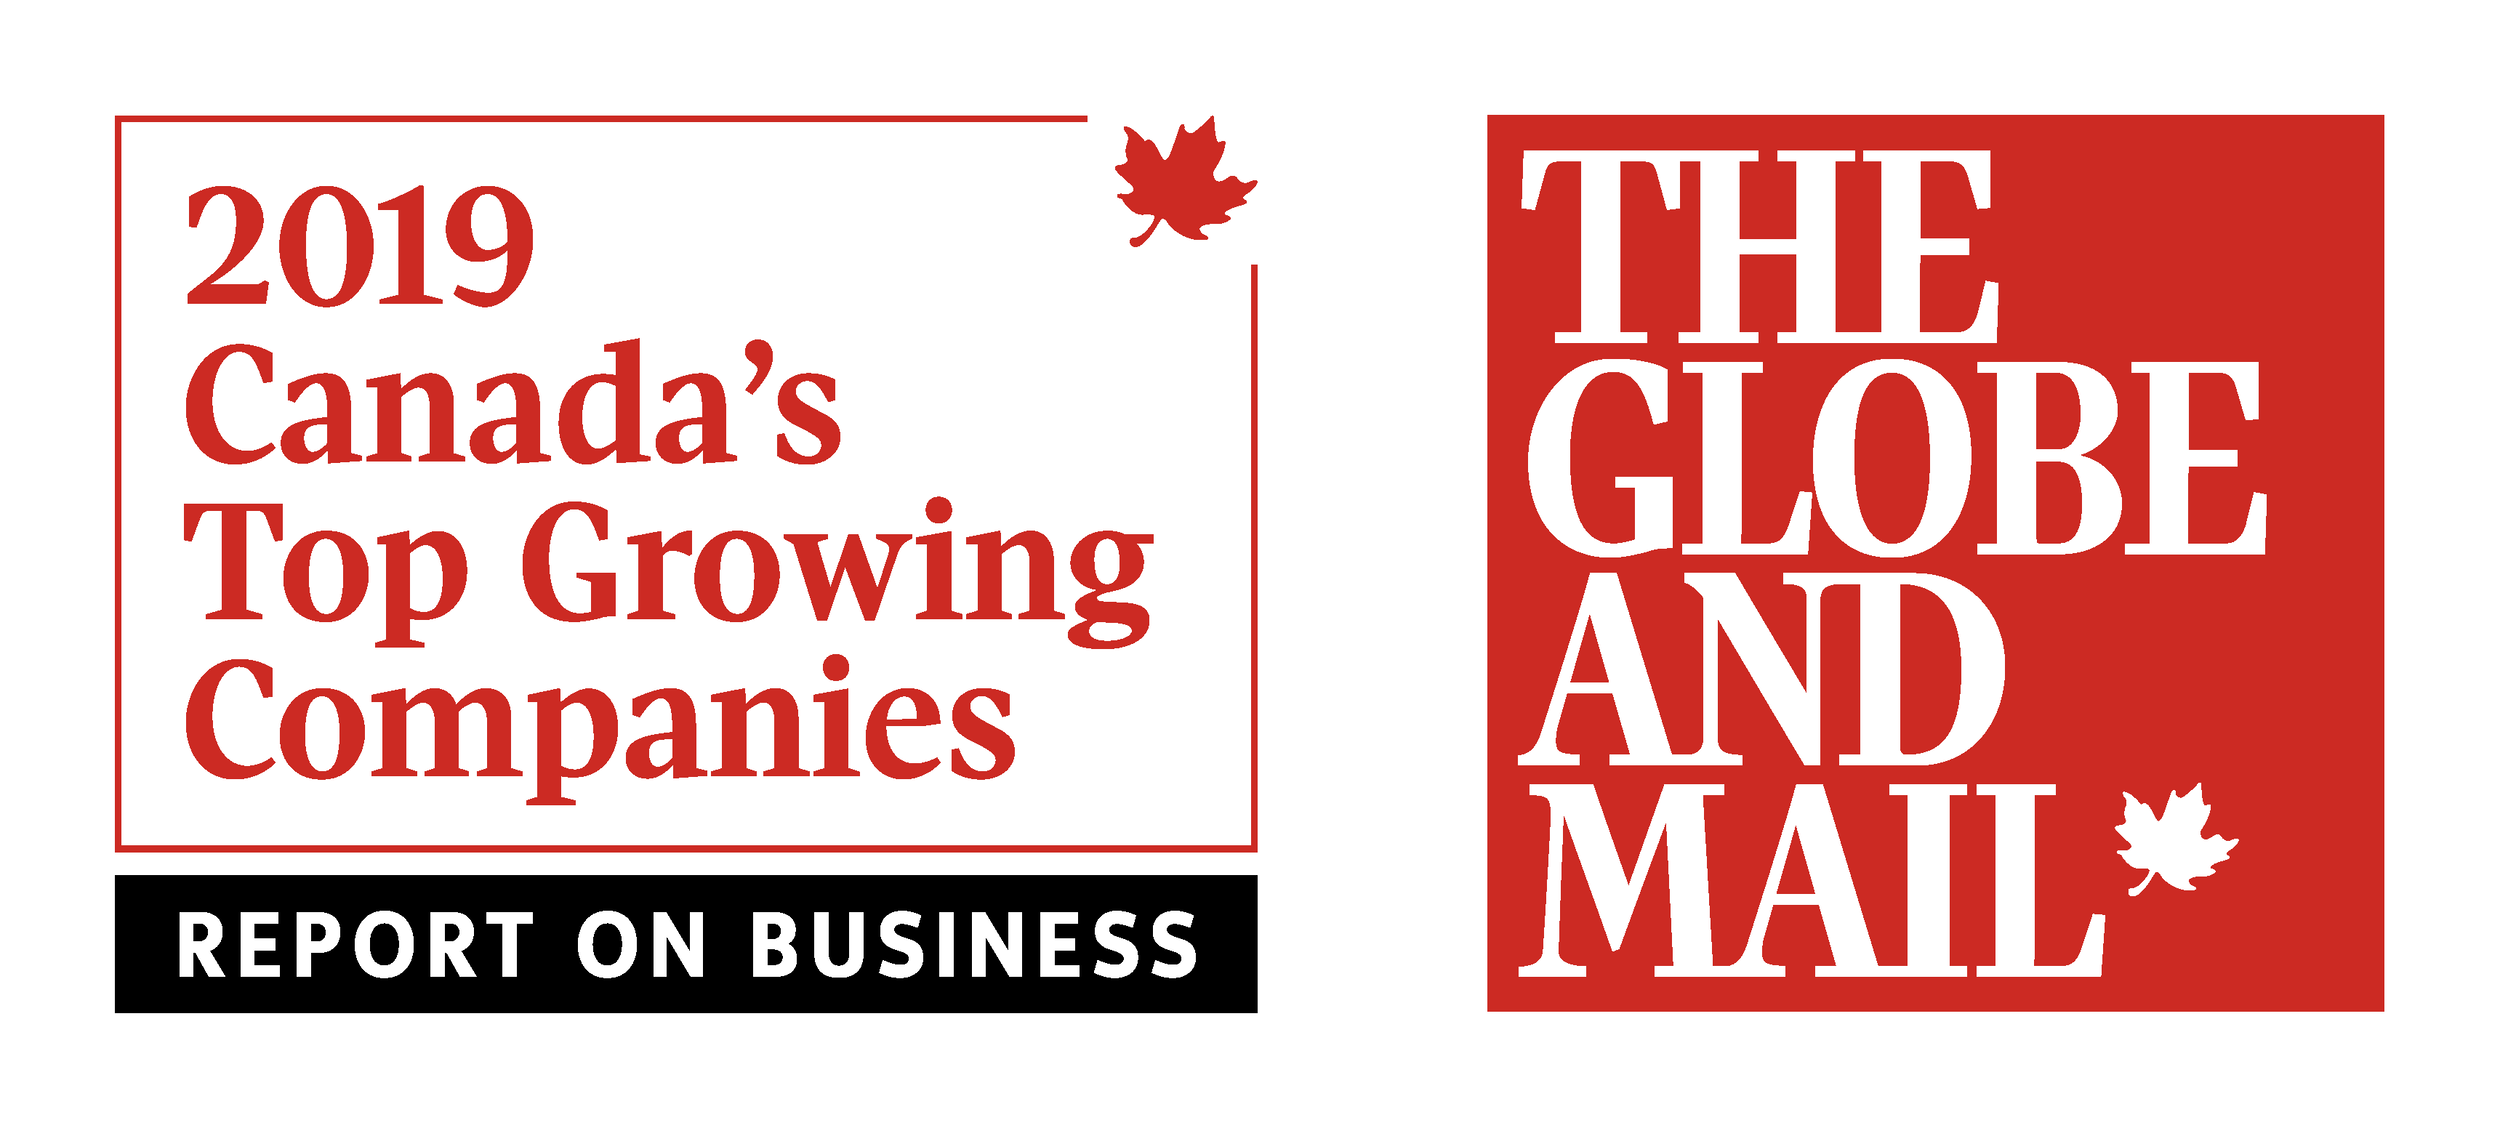 2019 CTGC with The Globe and Mail RGB.png